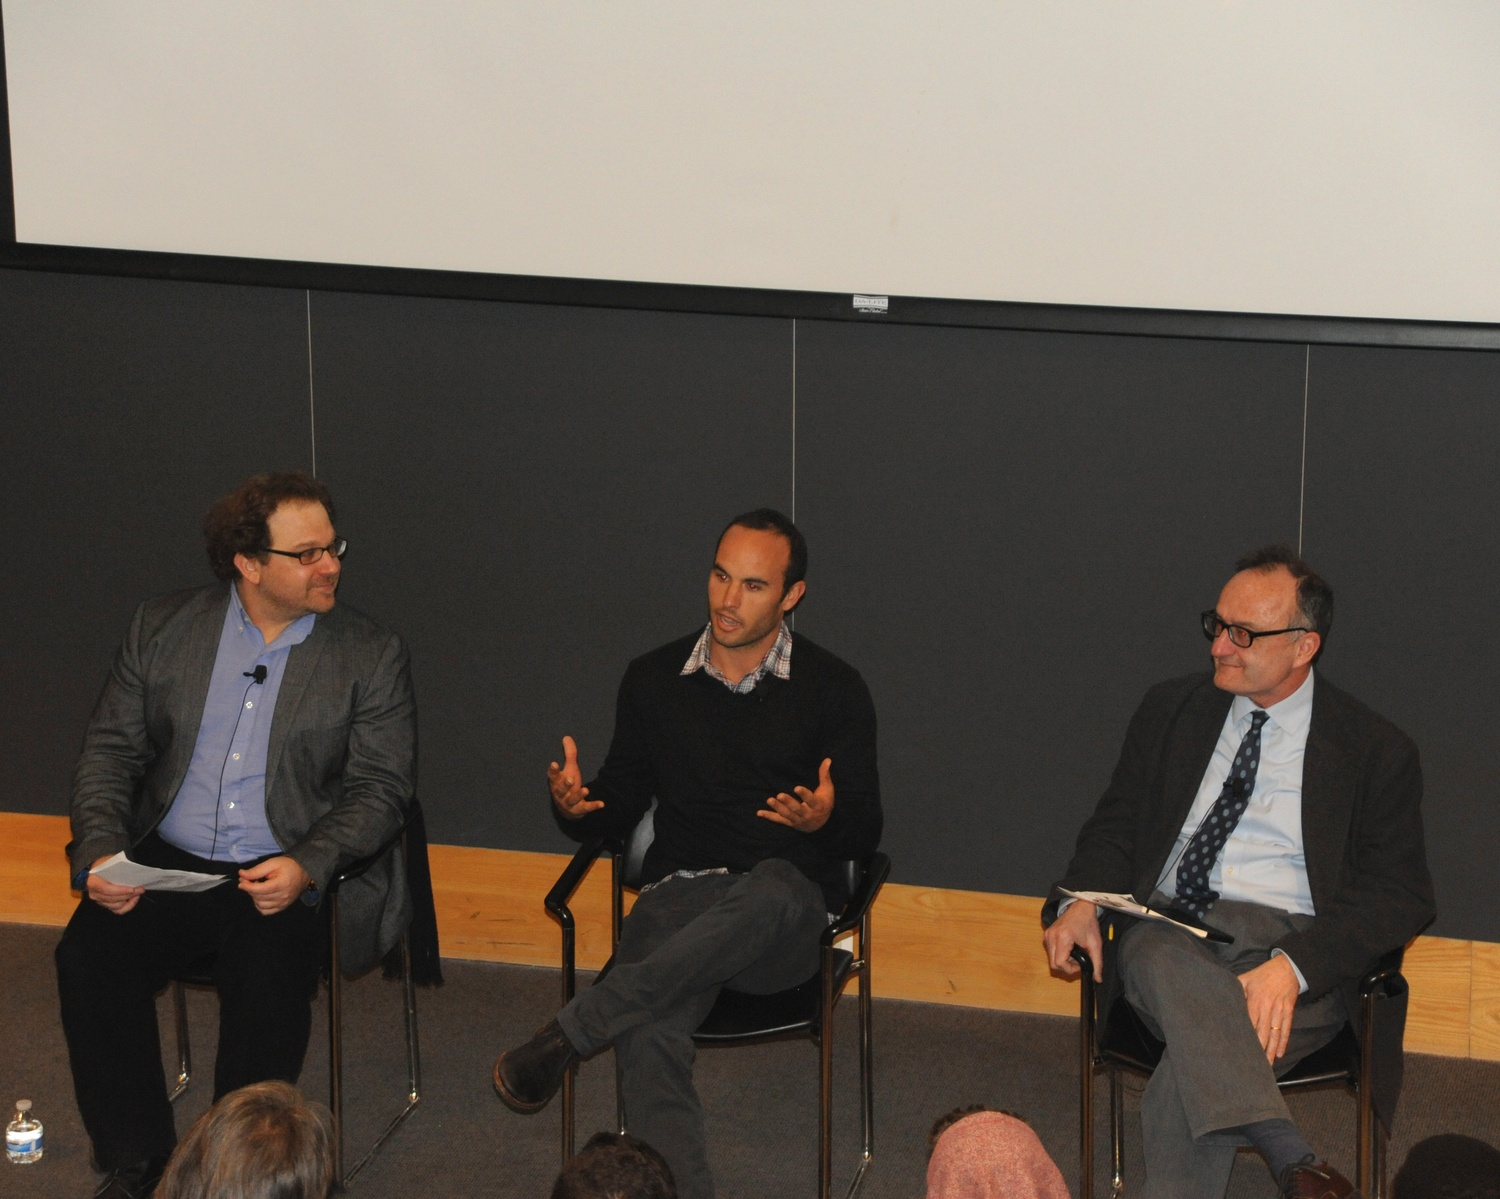 Former United States professional soccer player Landon T. Donovan engages in a discussion with students in Fong Auditorium Wednesday afternoon as part of Romance Studies 109: The Global Game.